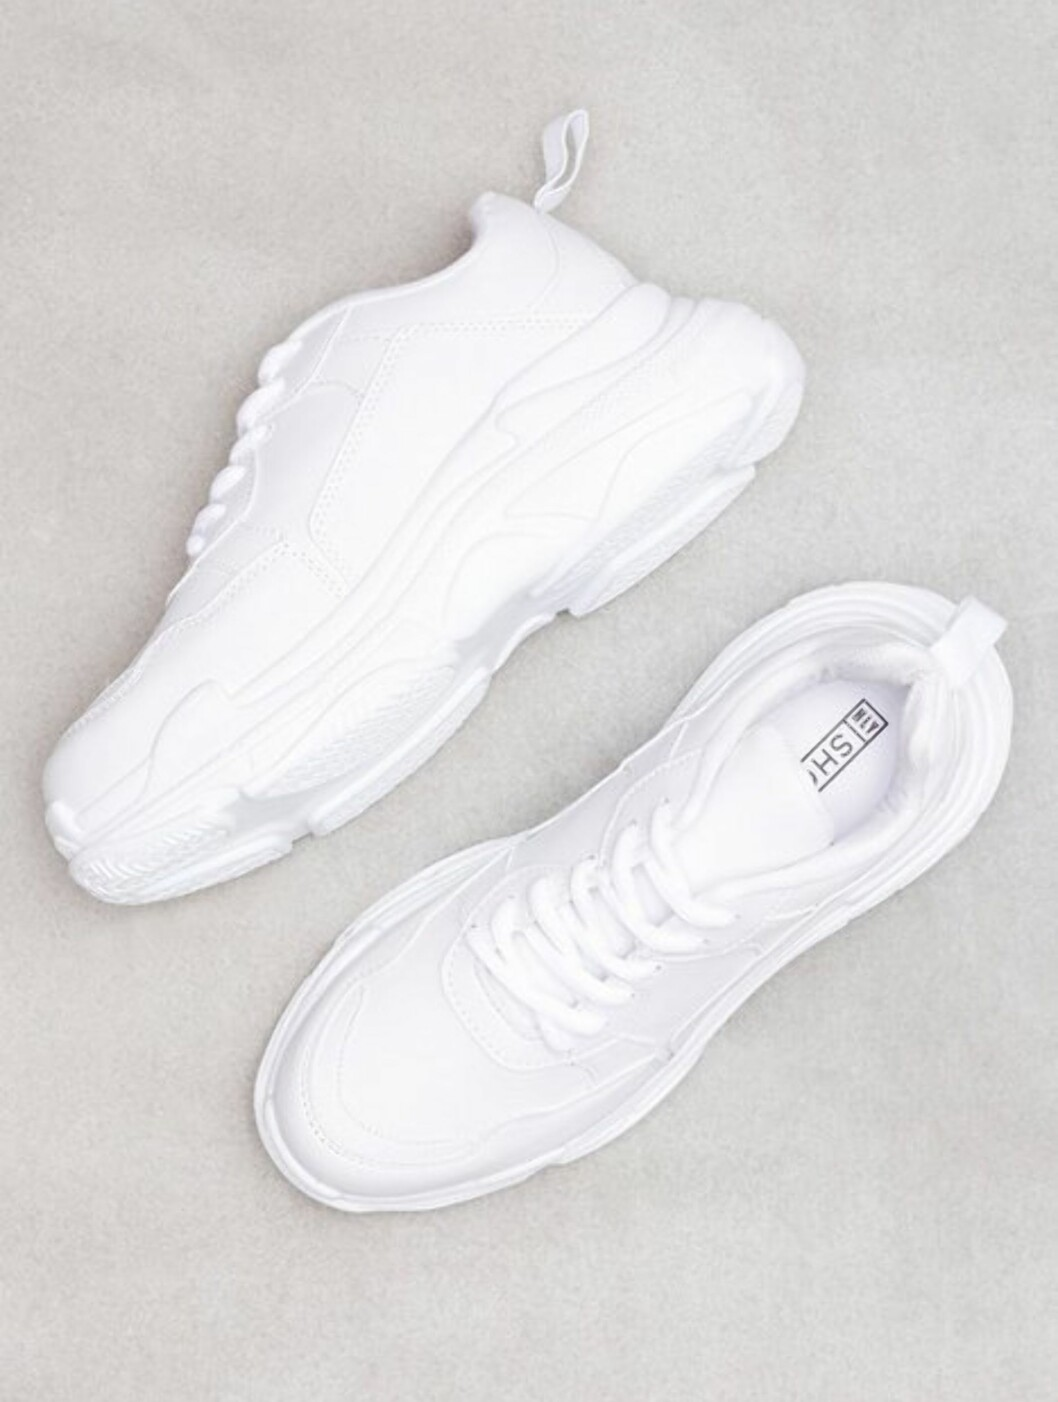 <strong>Sneakers fra Nelly |399,-| https:</strong>//nelly.com/no/kl%C3%A6r-til-kvinner/sko/sneakers/nly-shoes-427/perfect-chunky-sneaker-429459-0001/